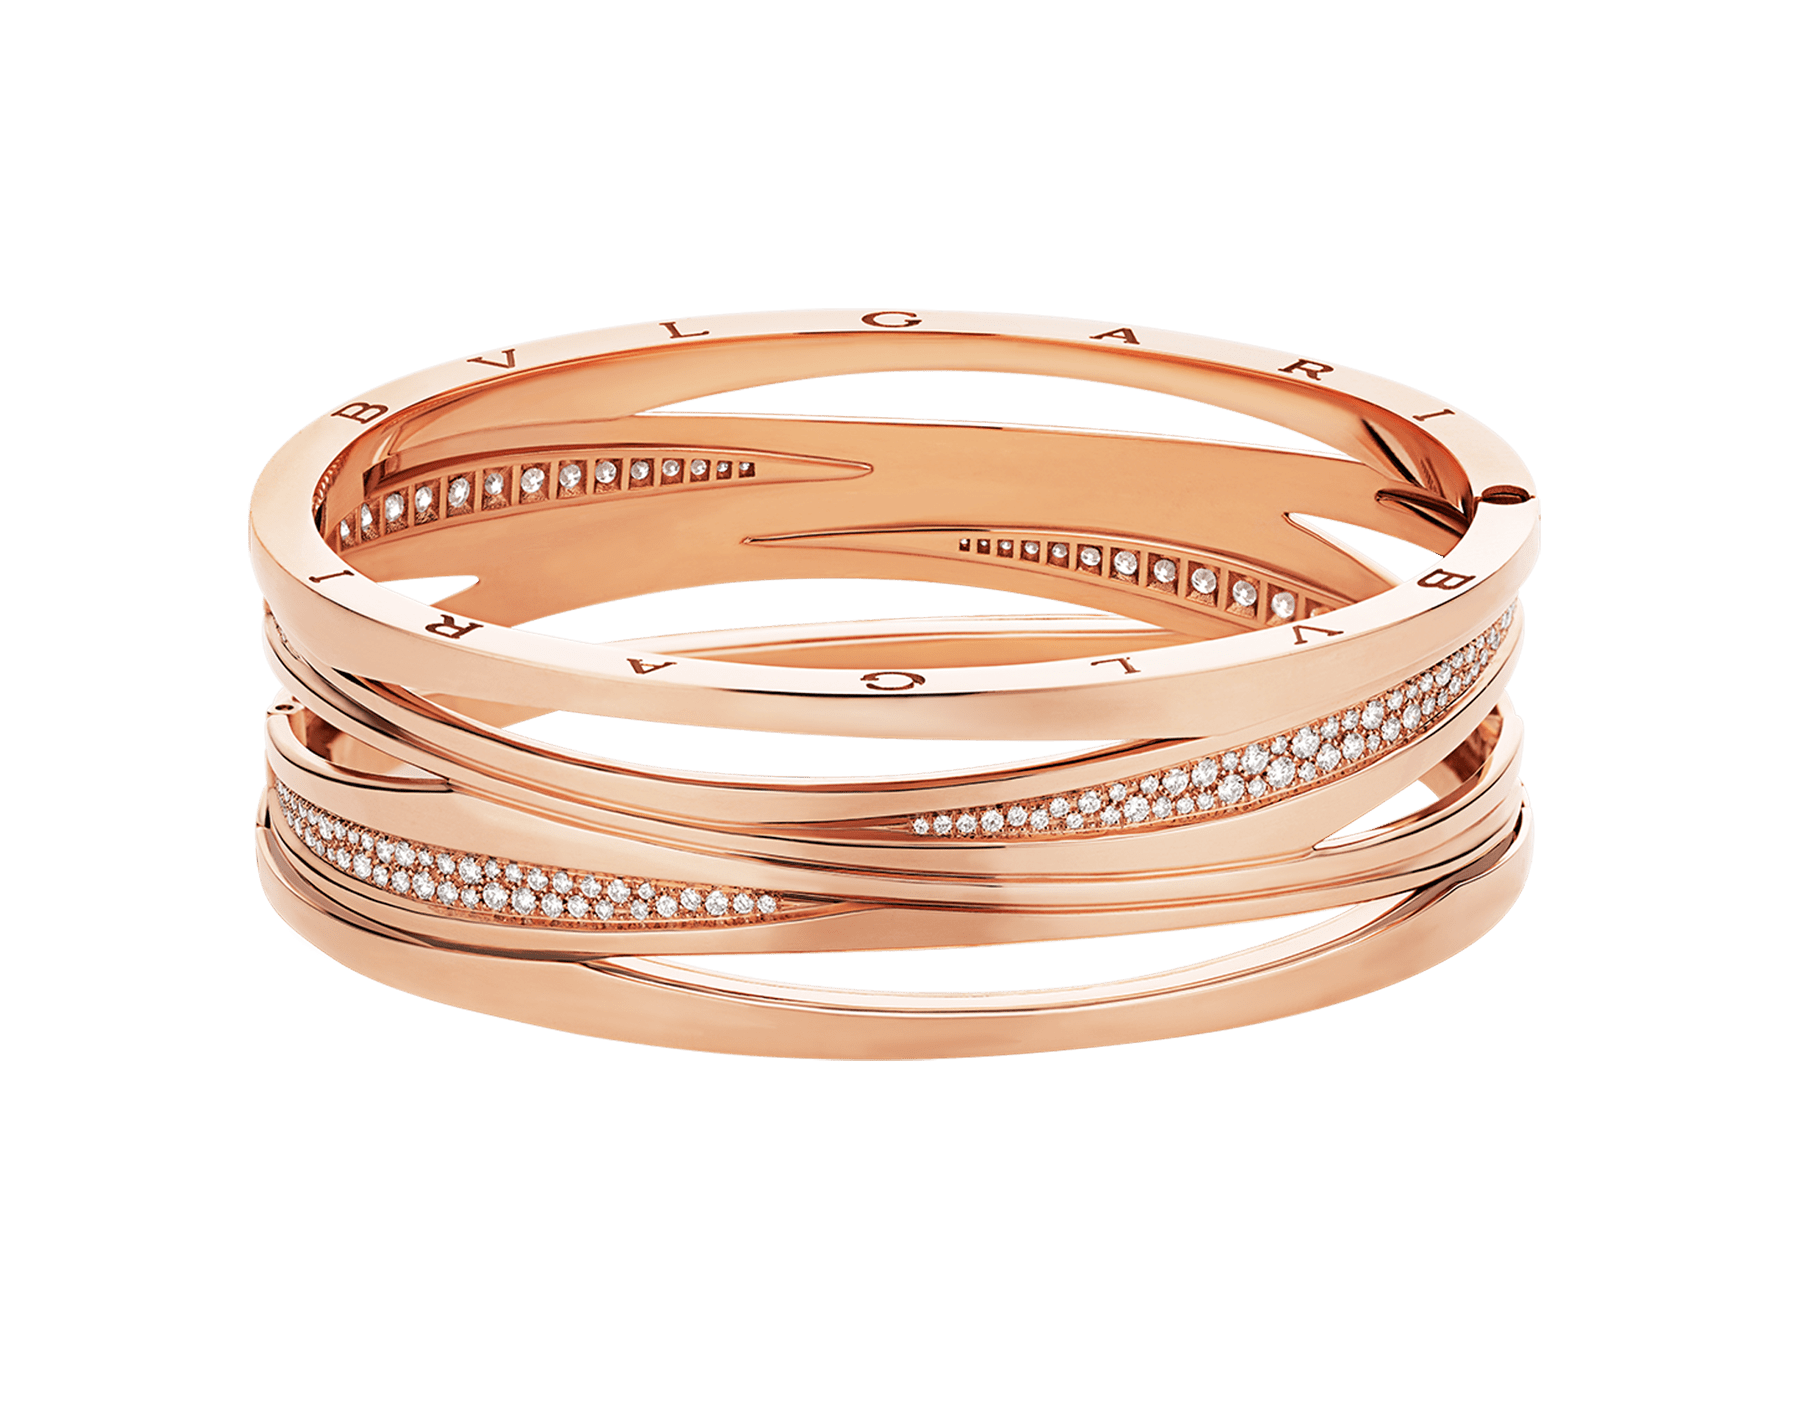 B.zero1 Design Legend bracelet in 18 kt rose gold, set with pavé diamonds on the spiral. BR858728 image 2